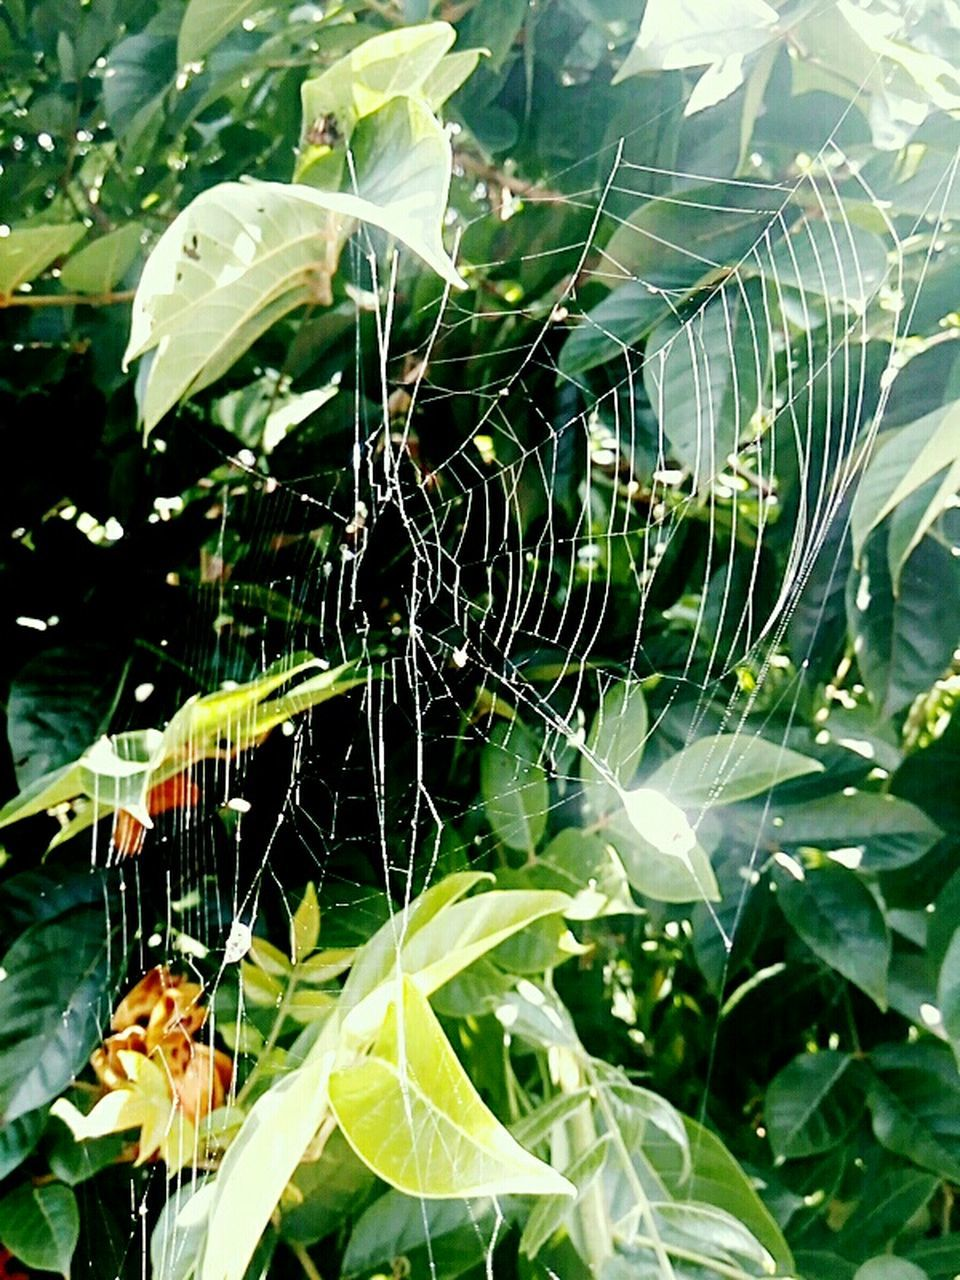 spider web, close-up, web, insect, nature, fragility, spider, focus on foreground, one animal, no people, outdoors, animal themes, day, green color, leaf, animals in the wild, beauty in nature, plant, growth, freshness